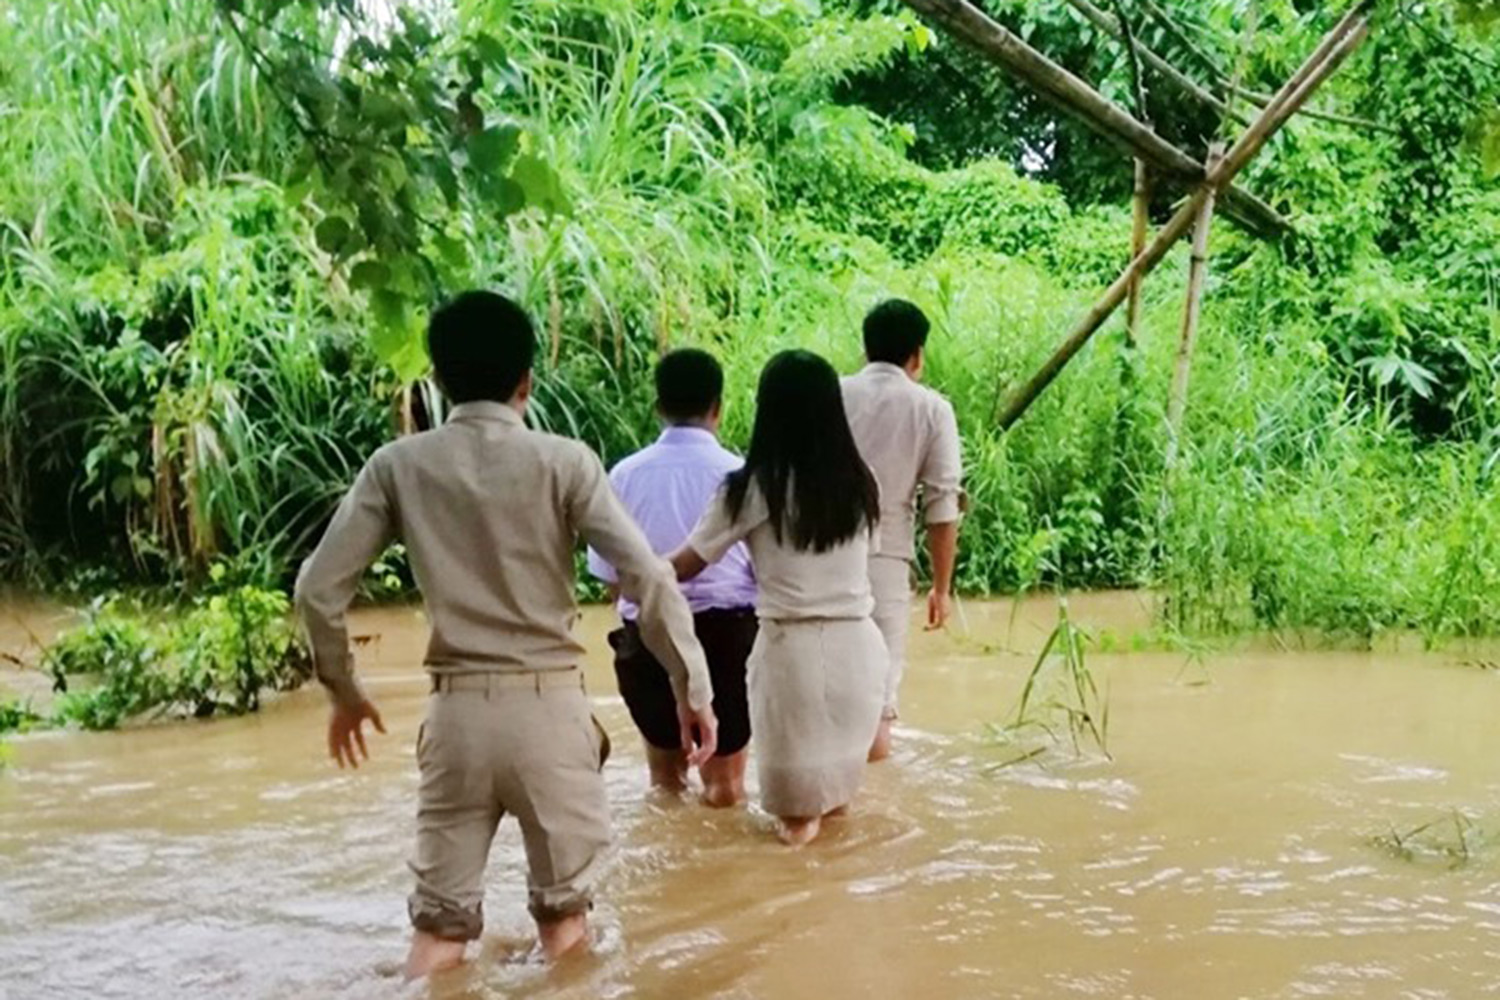 Thanoksak, a 16-year-old ethnic Karen student, leads teachers across the creek he has to wade each day to get catch a bus to school from his remote community in Sai Yok district, Kanchanaburi. (Photo by Piyarat Chongcharoen)